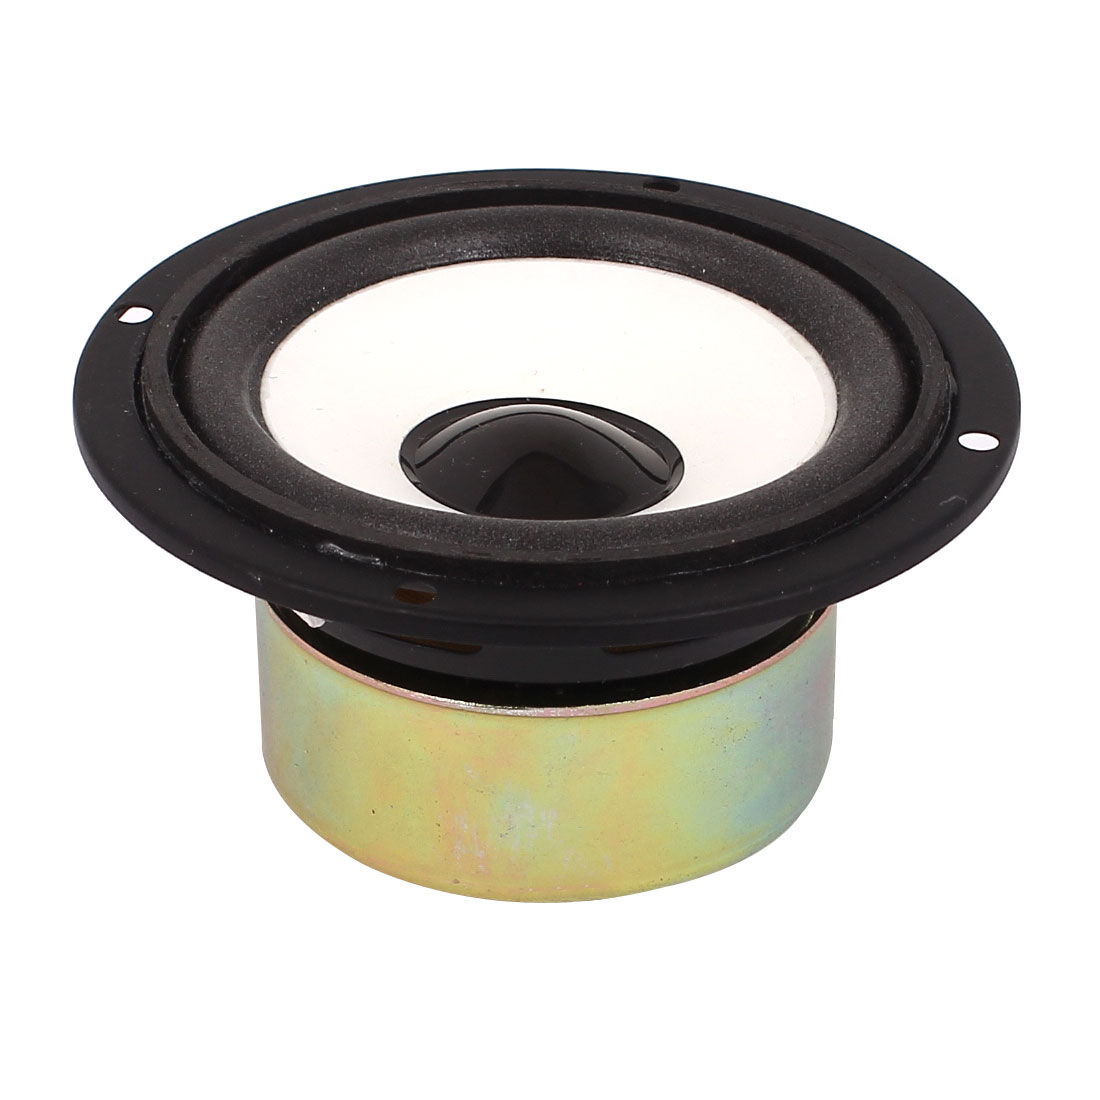 Multimedia 5W 5 Watt 4 Ohm 89mm Dia Round Aluminum Internal Magnet Speaker